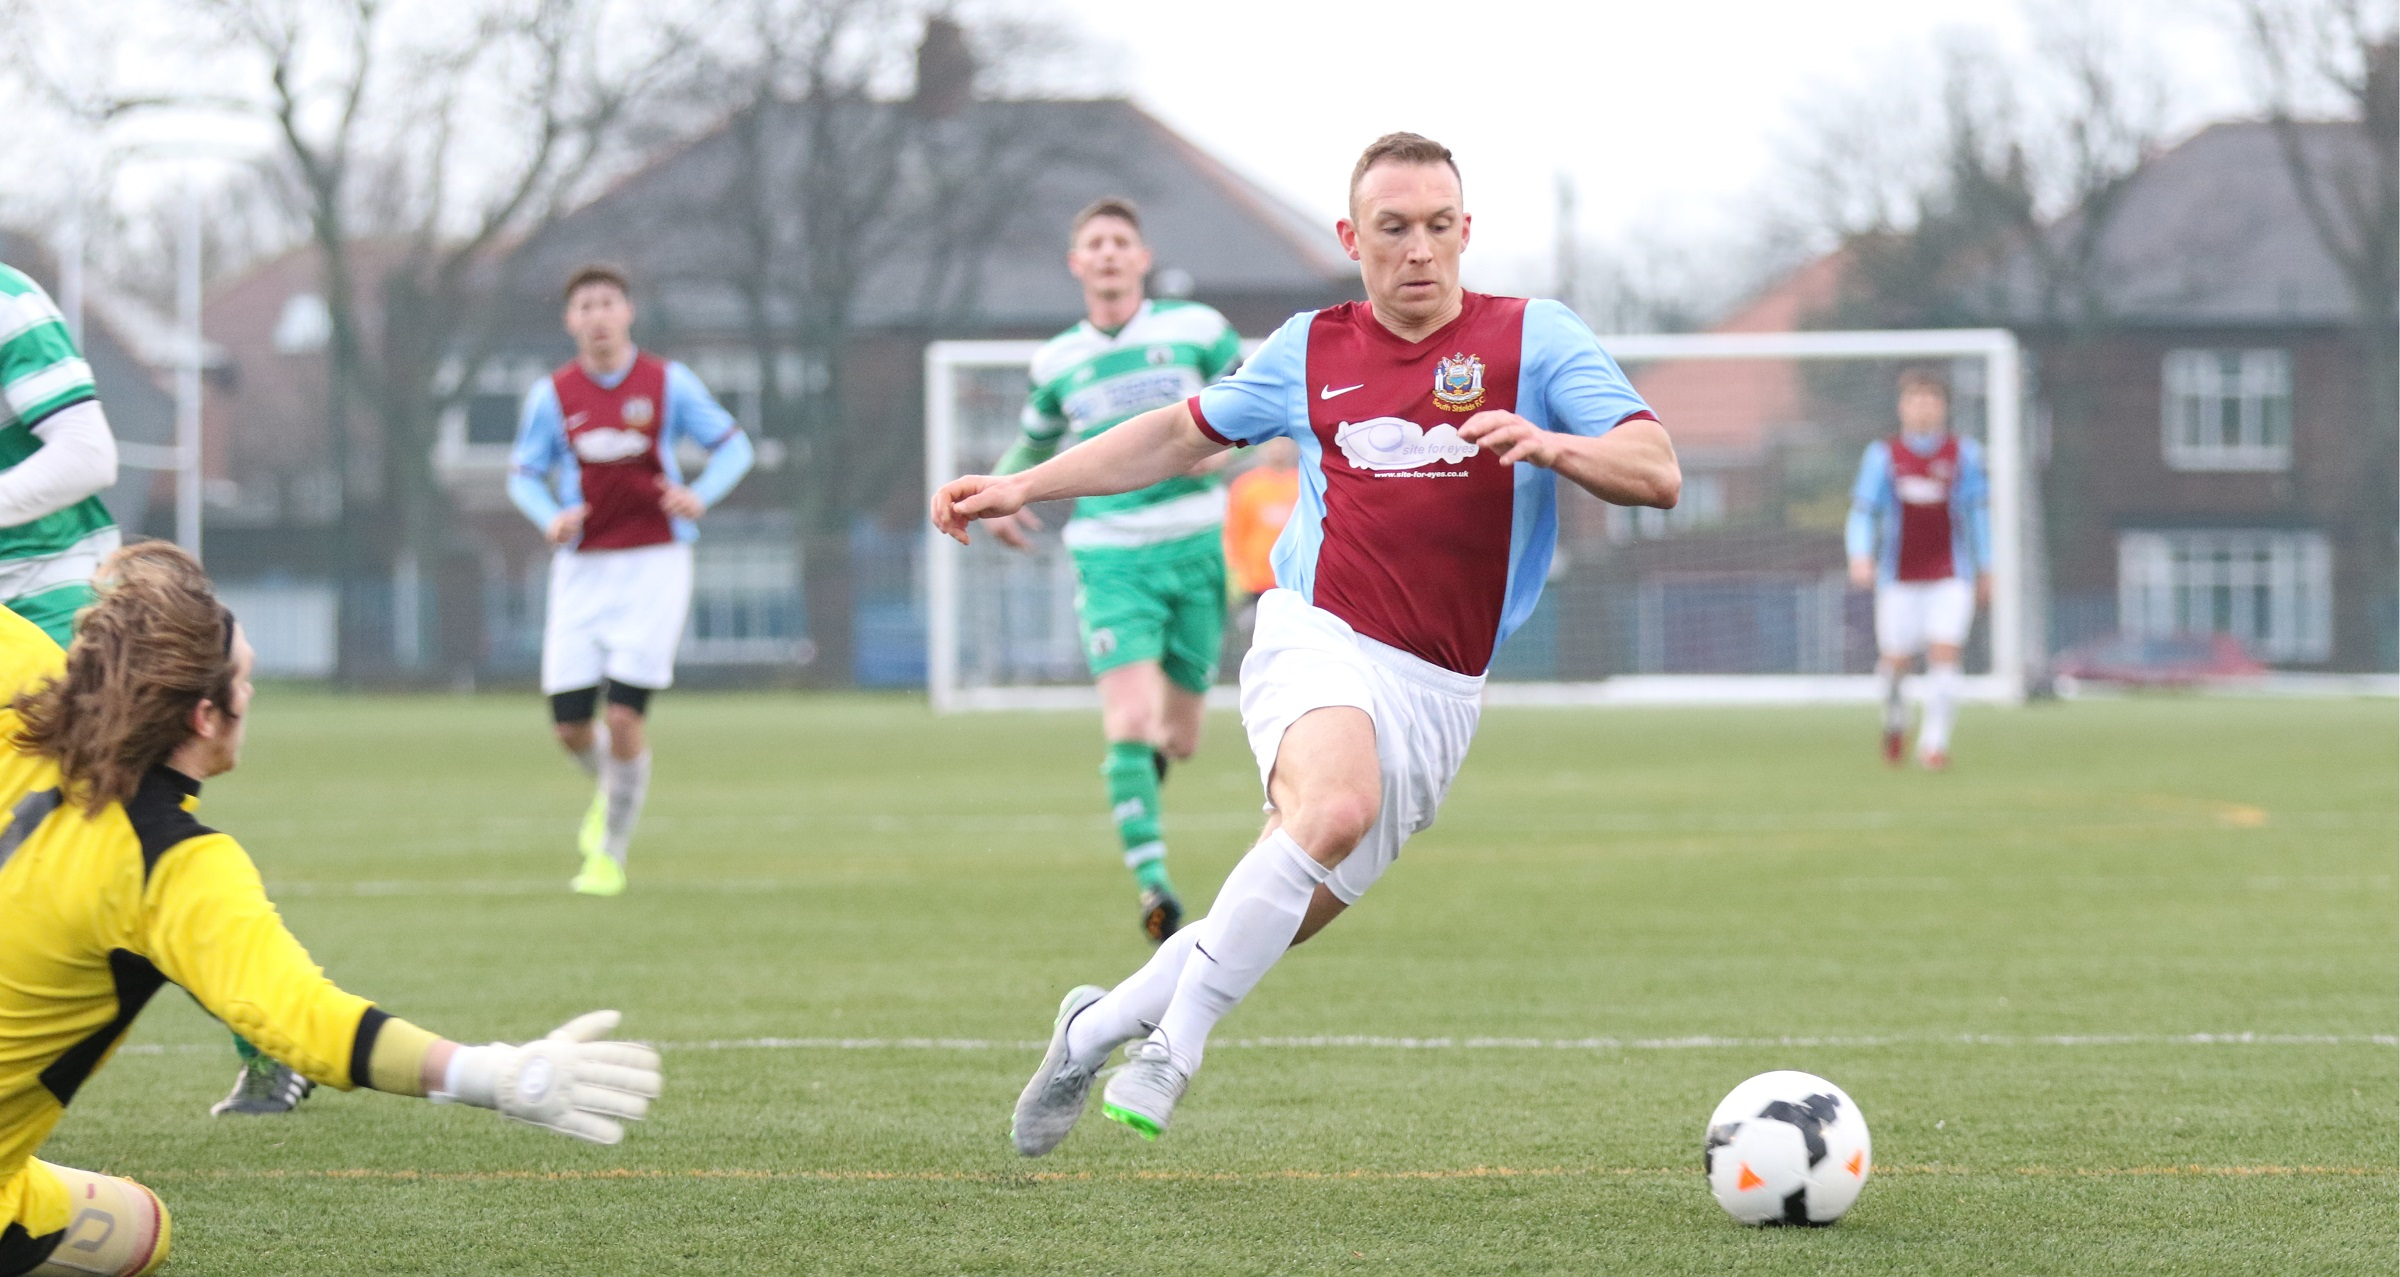 HIGHLIGHTS: South Shields 3-1 West Allotment Celtic (friendly)